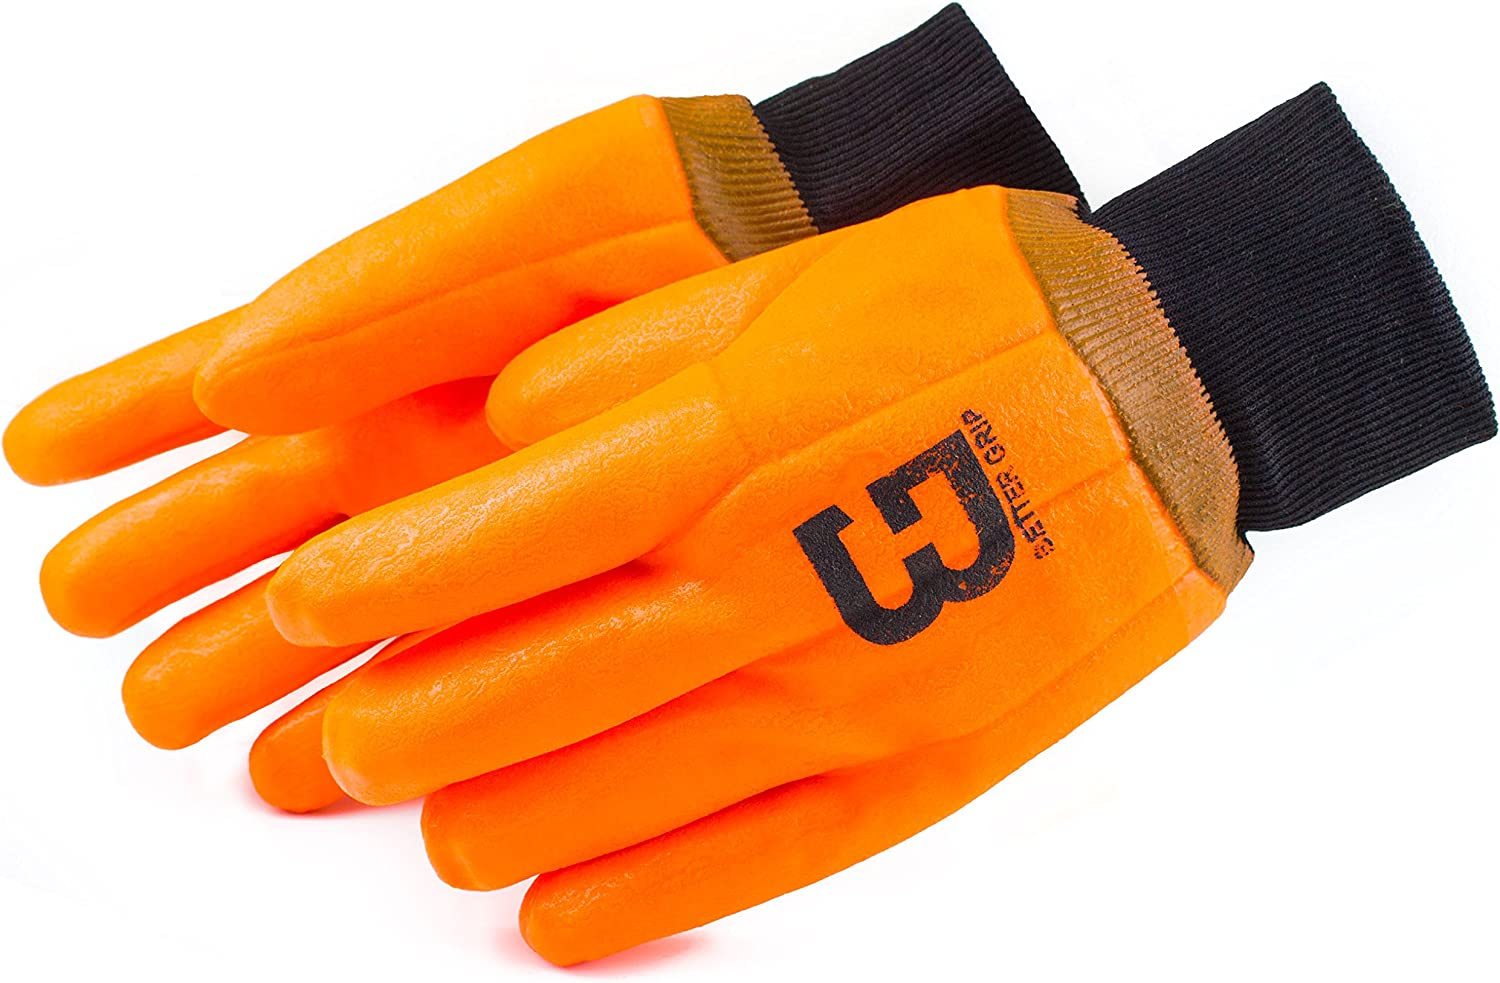 (Box Deal) Better Grip BG105ORGKW Heavy Duty Premium Sandy finished High Visibility PVC Coated Gloves with Knit Wrist, Chemical Resistant, One Size (72 pair- 1 Case)